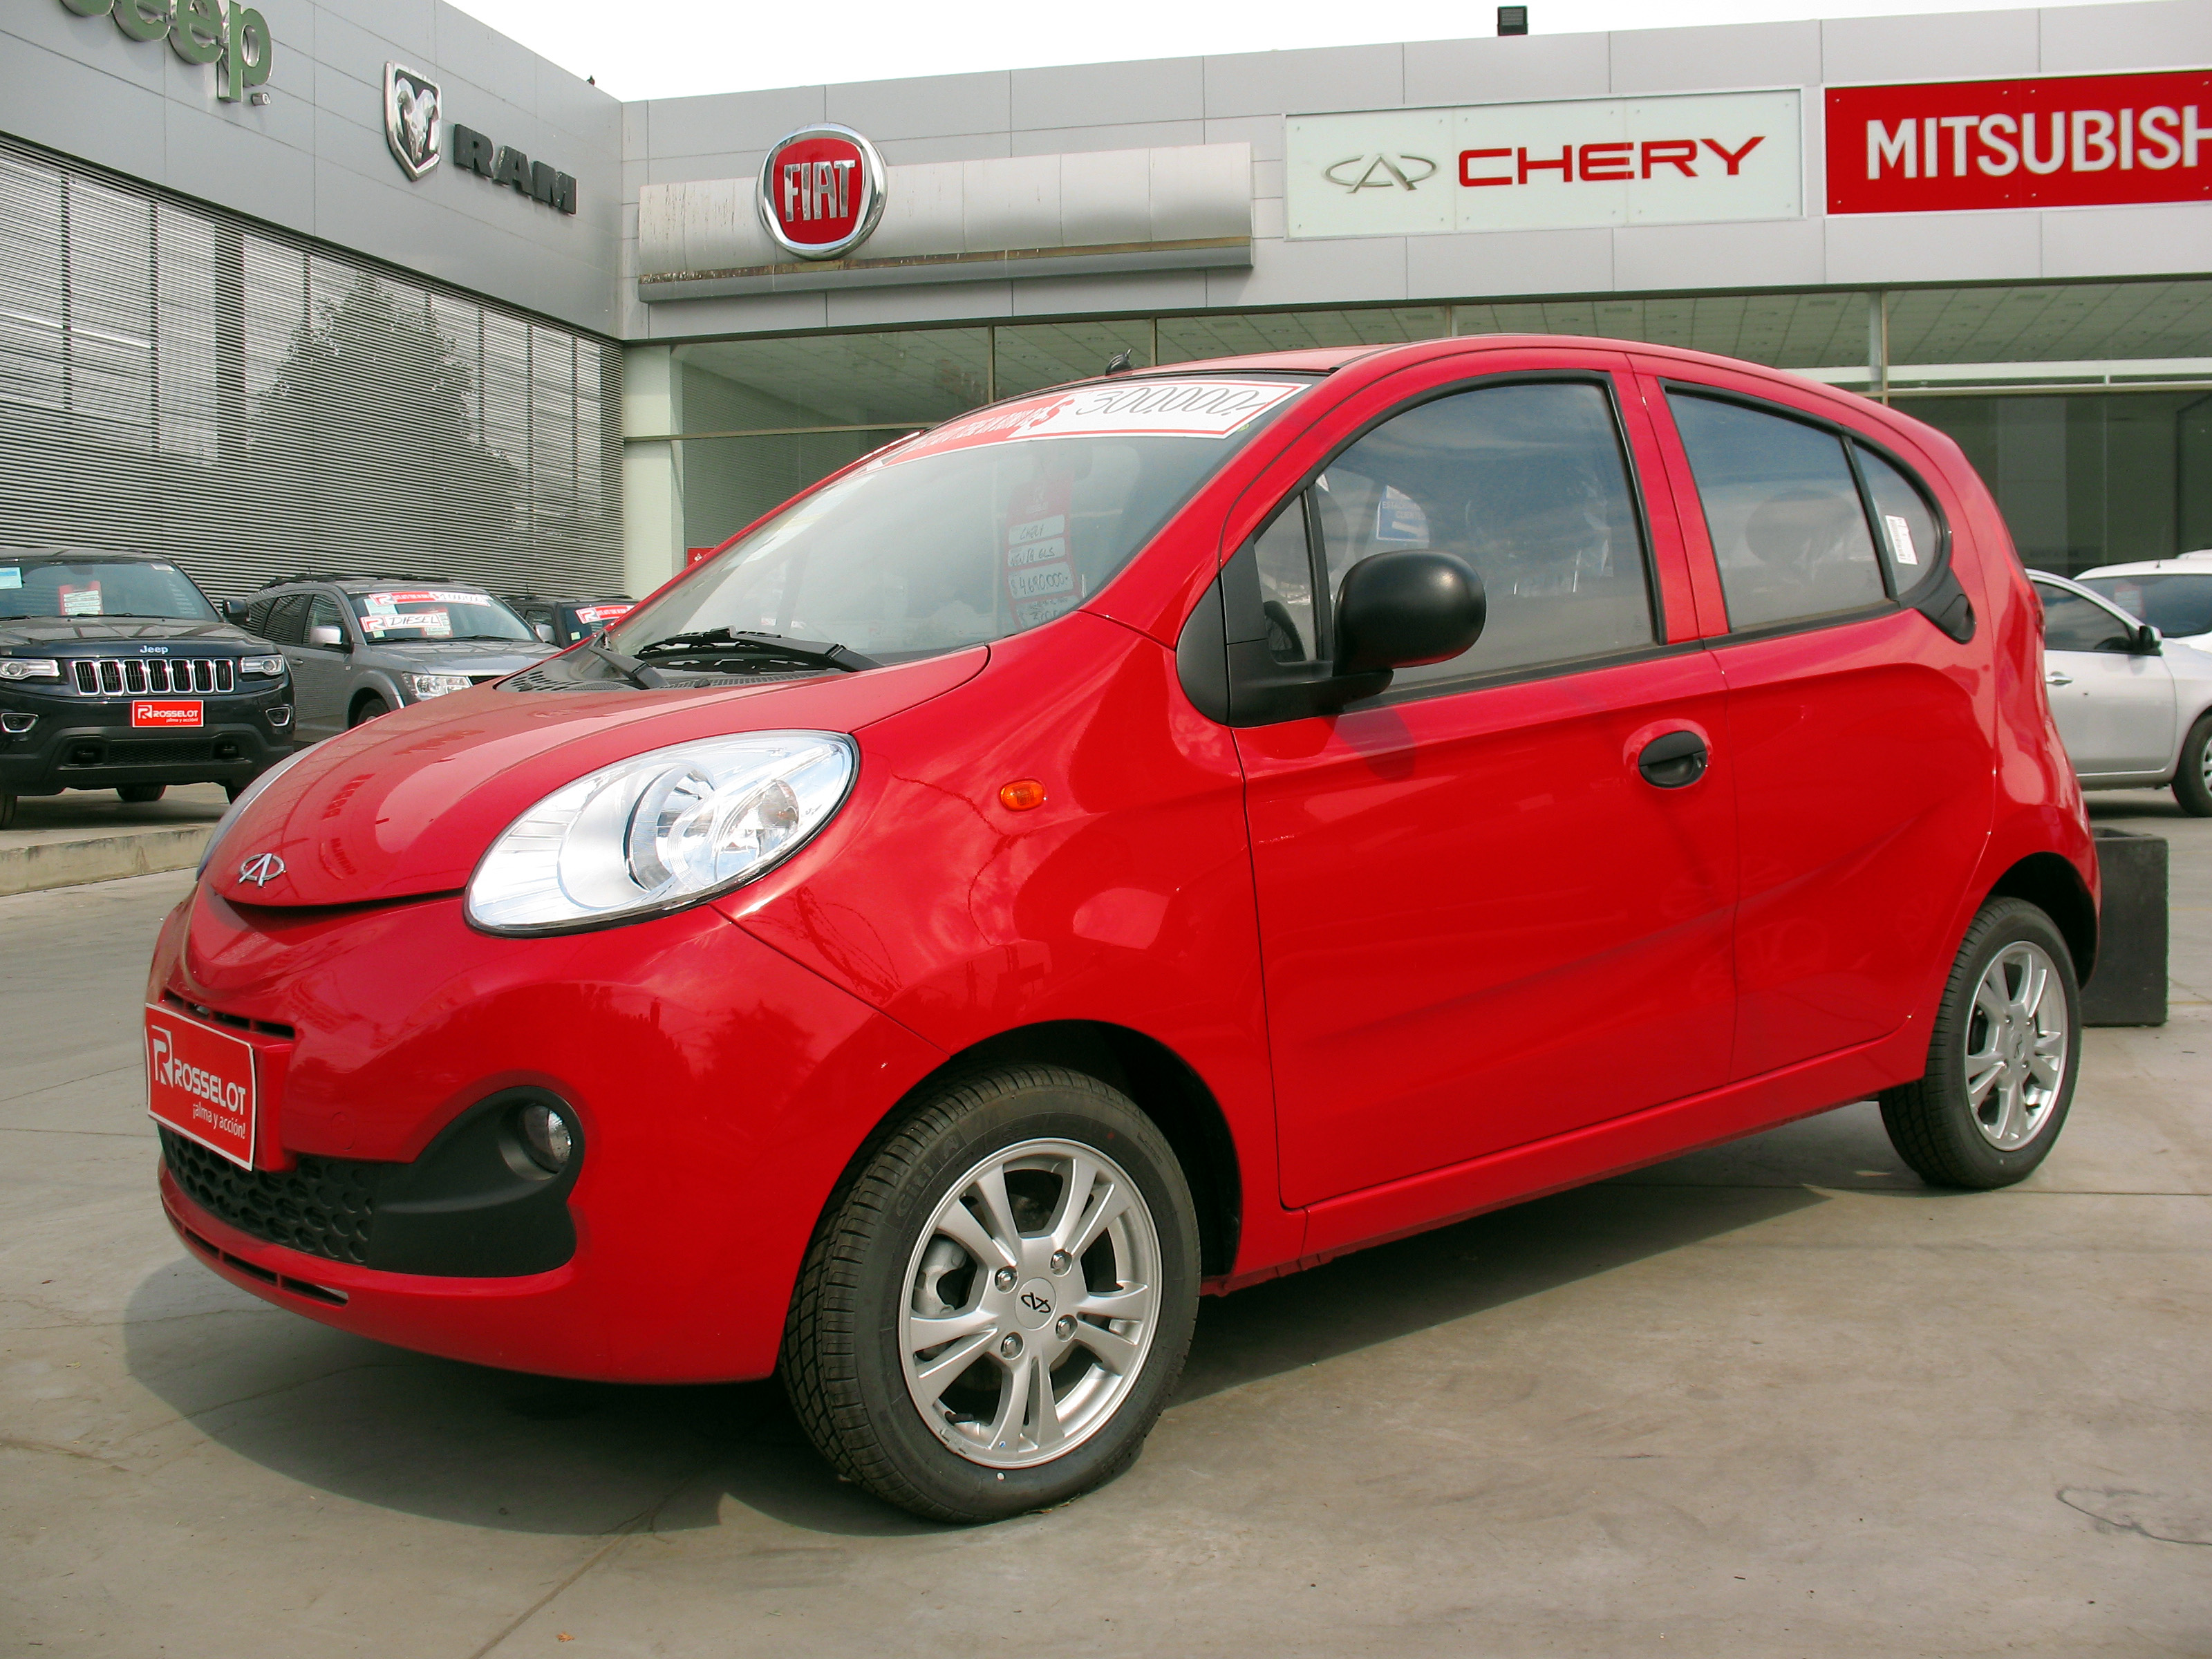 Manual Chery Iq 1 How To Troubleshooting Guide Book Qq3 Wiring Diagram File 0 Gls 2015 16651723150 Wikimedia Commons Rh Org